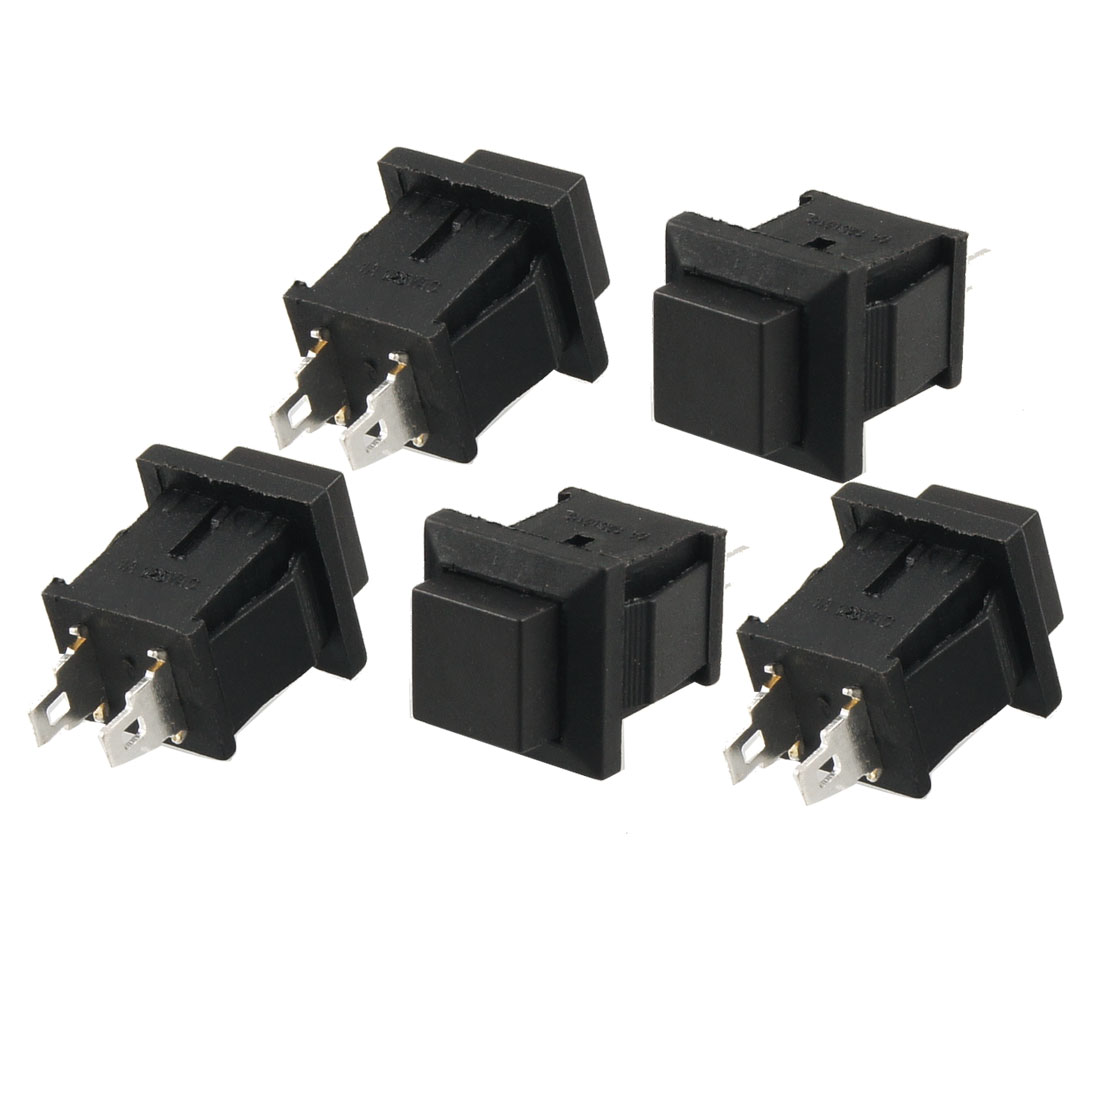 NewQuality 10pcs 4Pin Female Header Connector socket for Arduino Shield 3C